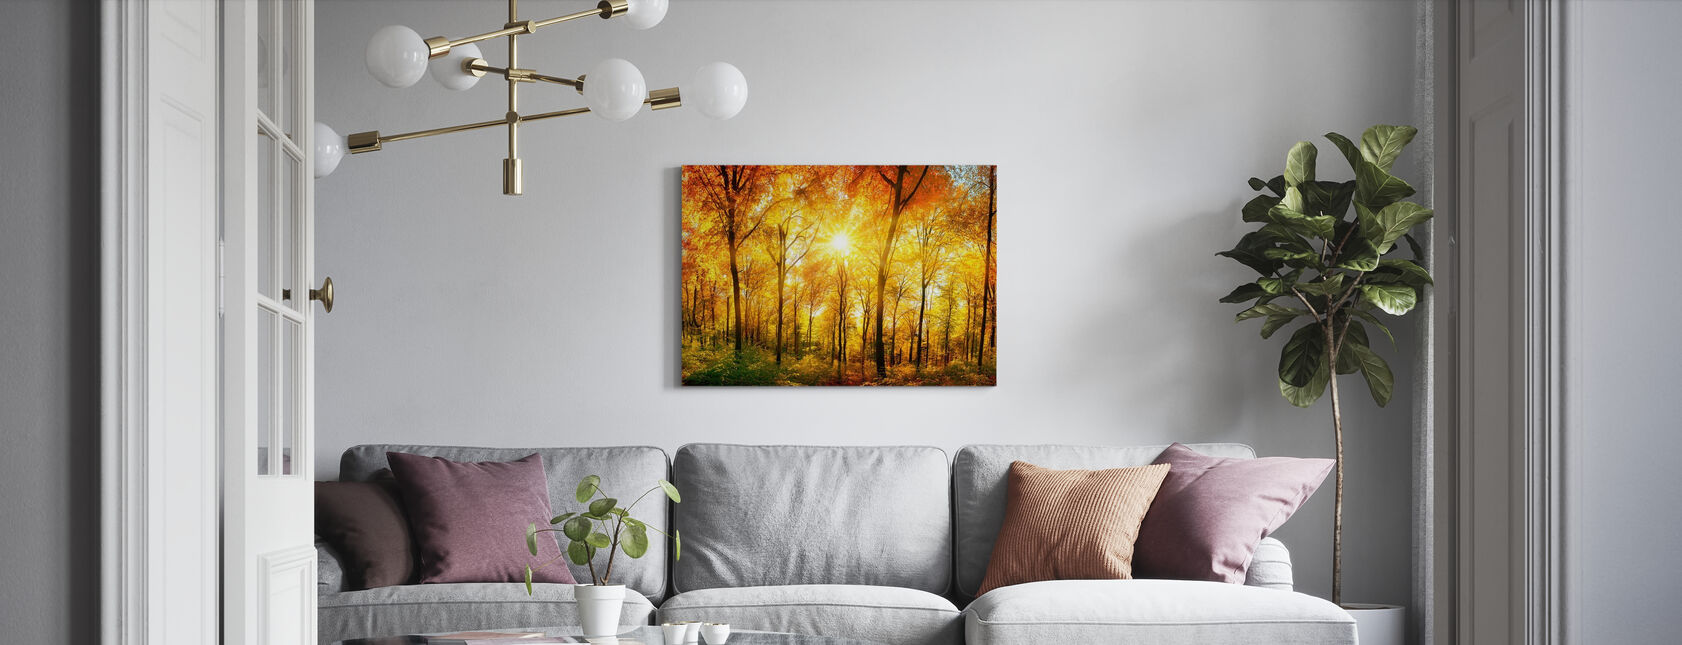 Autumn Forest - Canvas print - Living Room